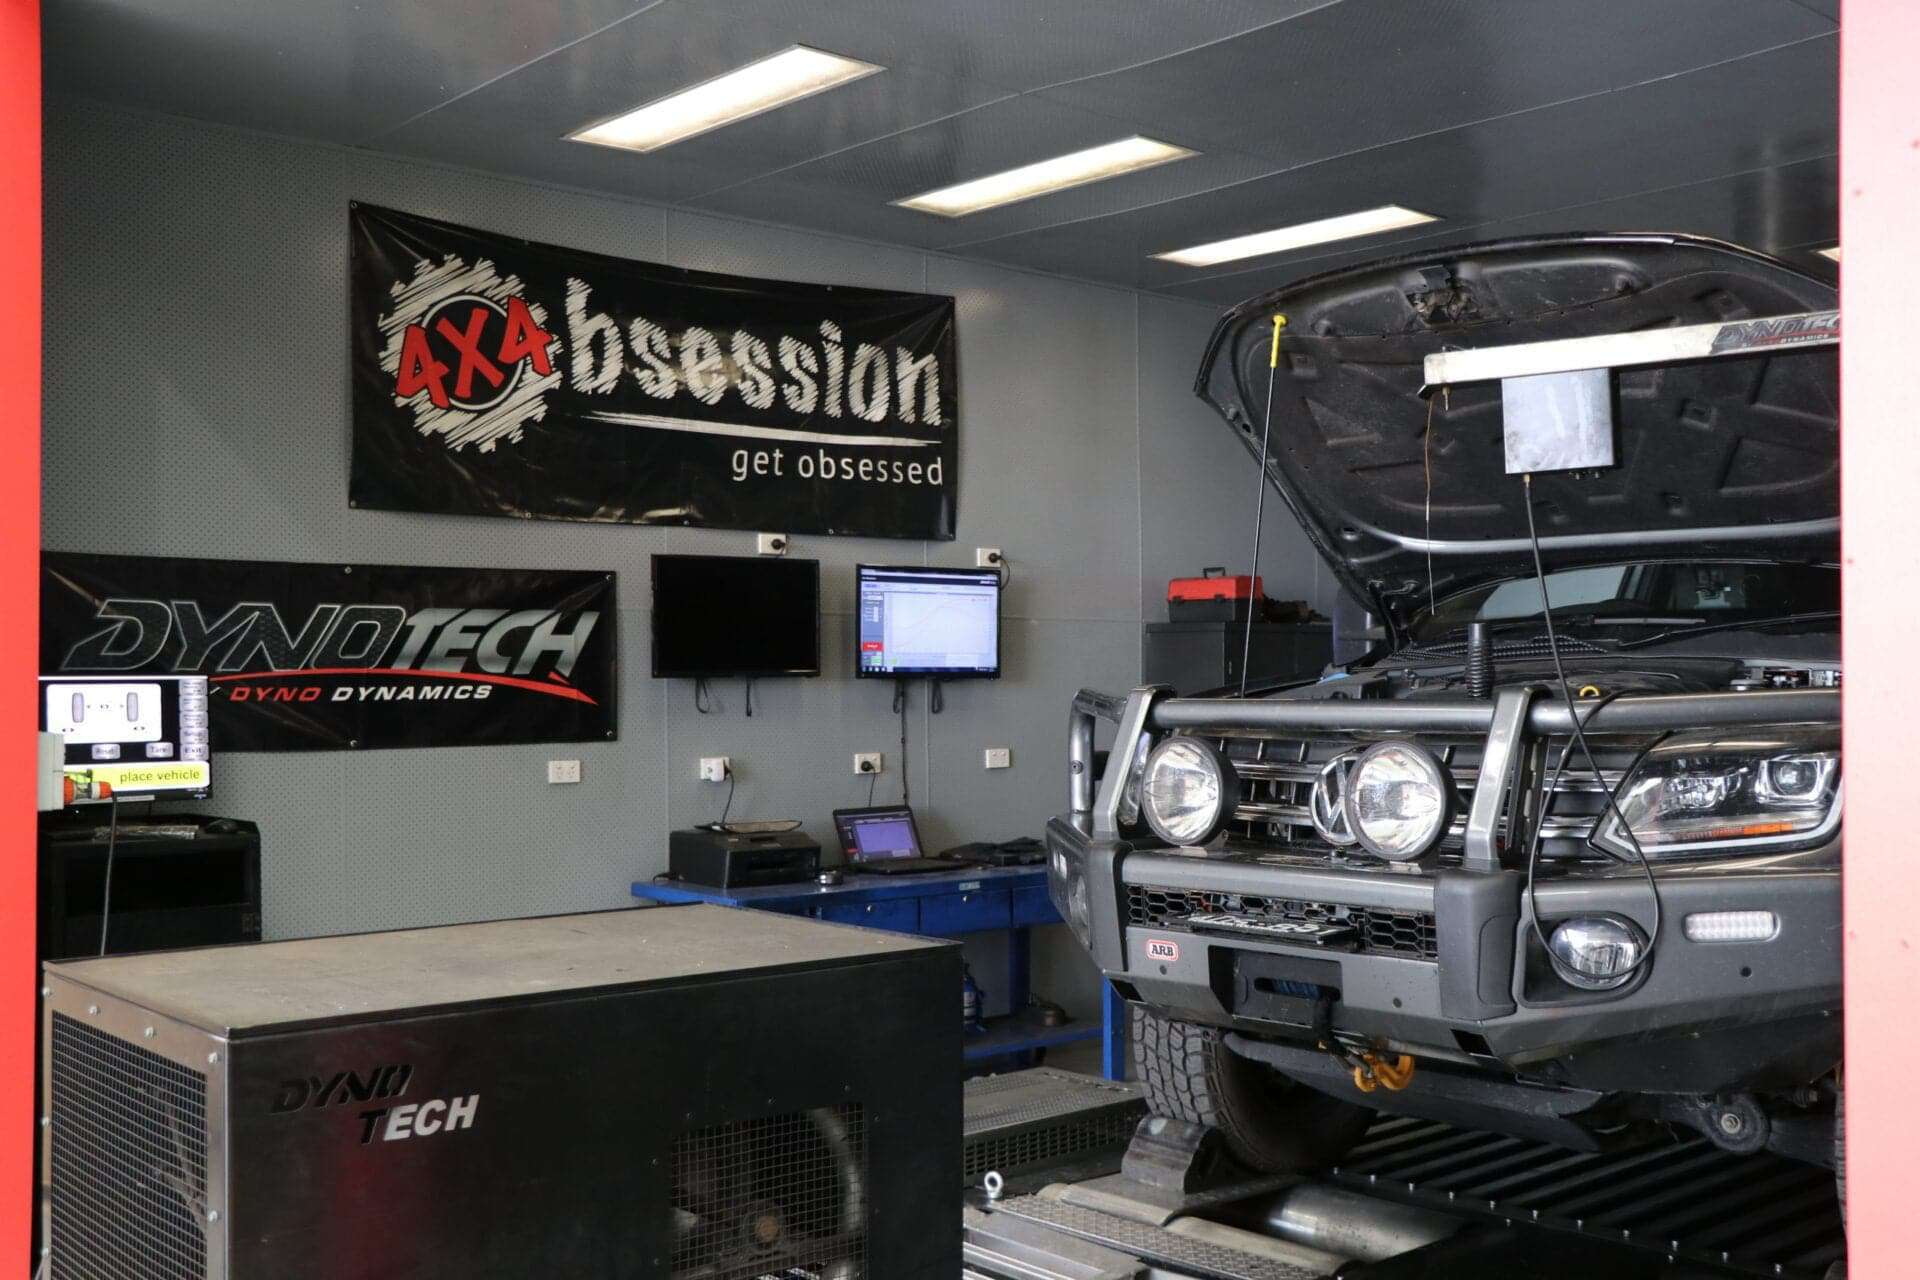 Dyno Tuning a 4x4 during 4WD Servicing | 4x4 Obsession, 4WD Service Centre